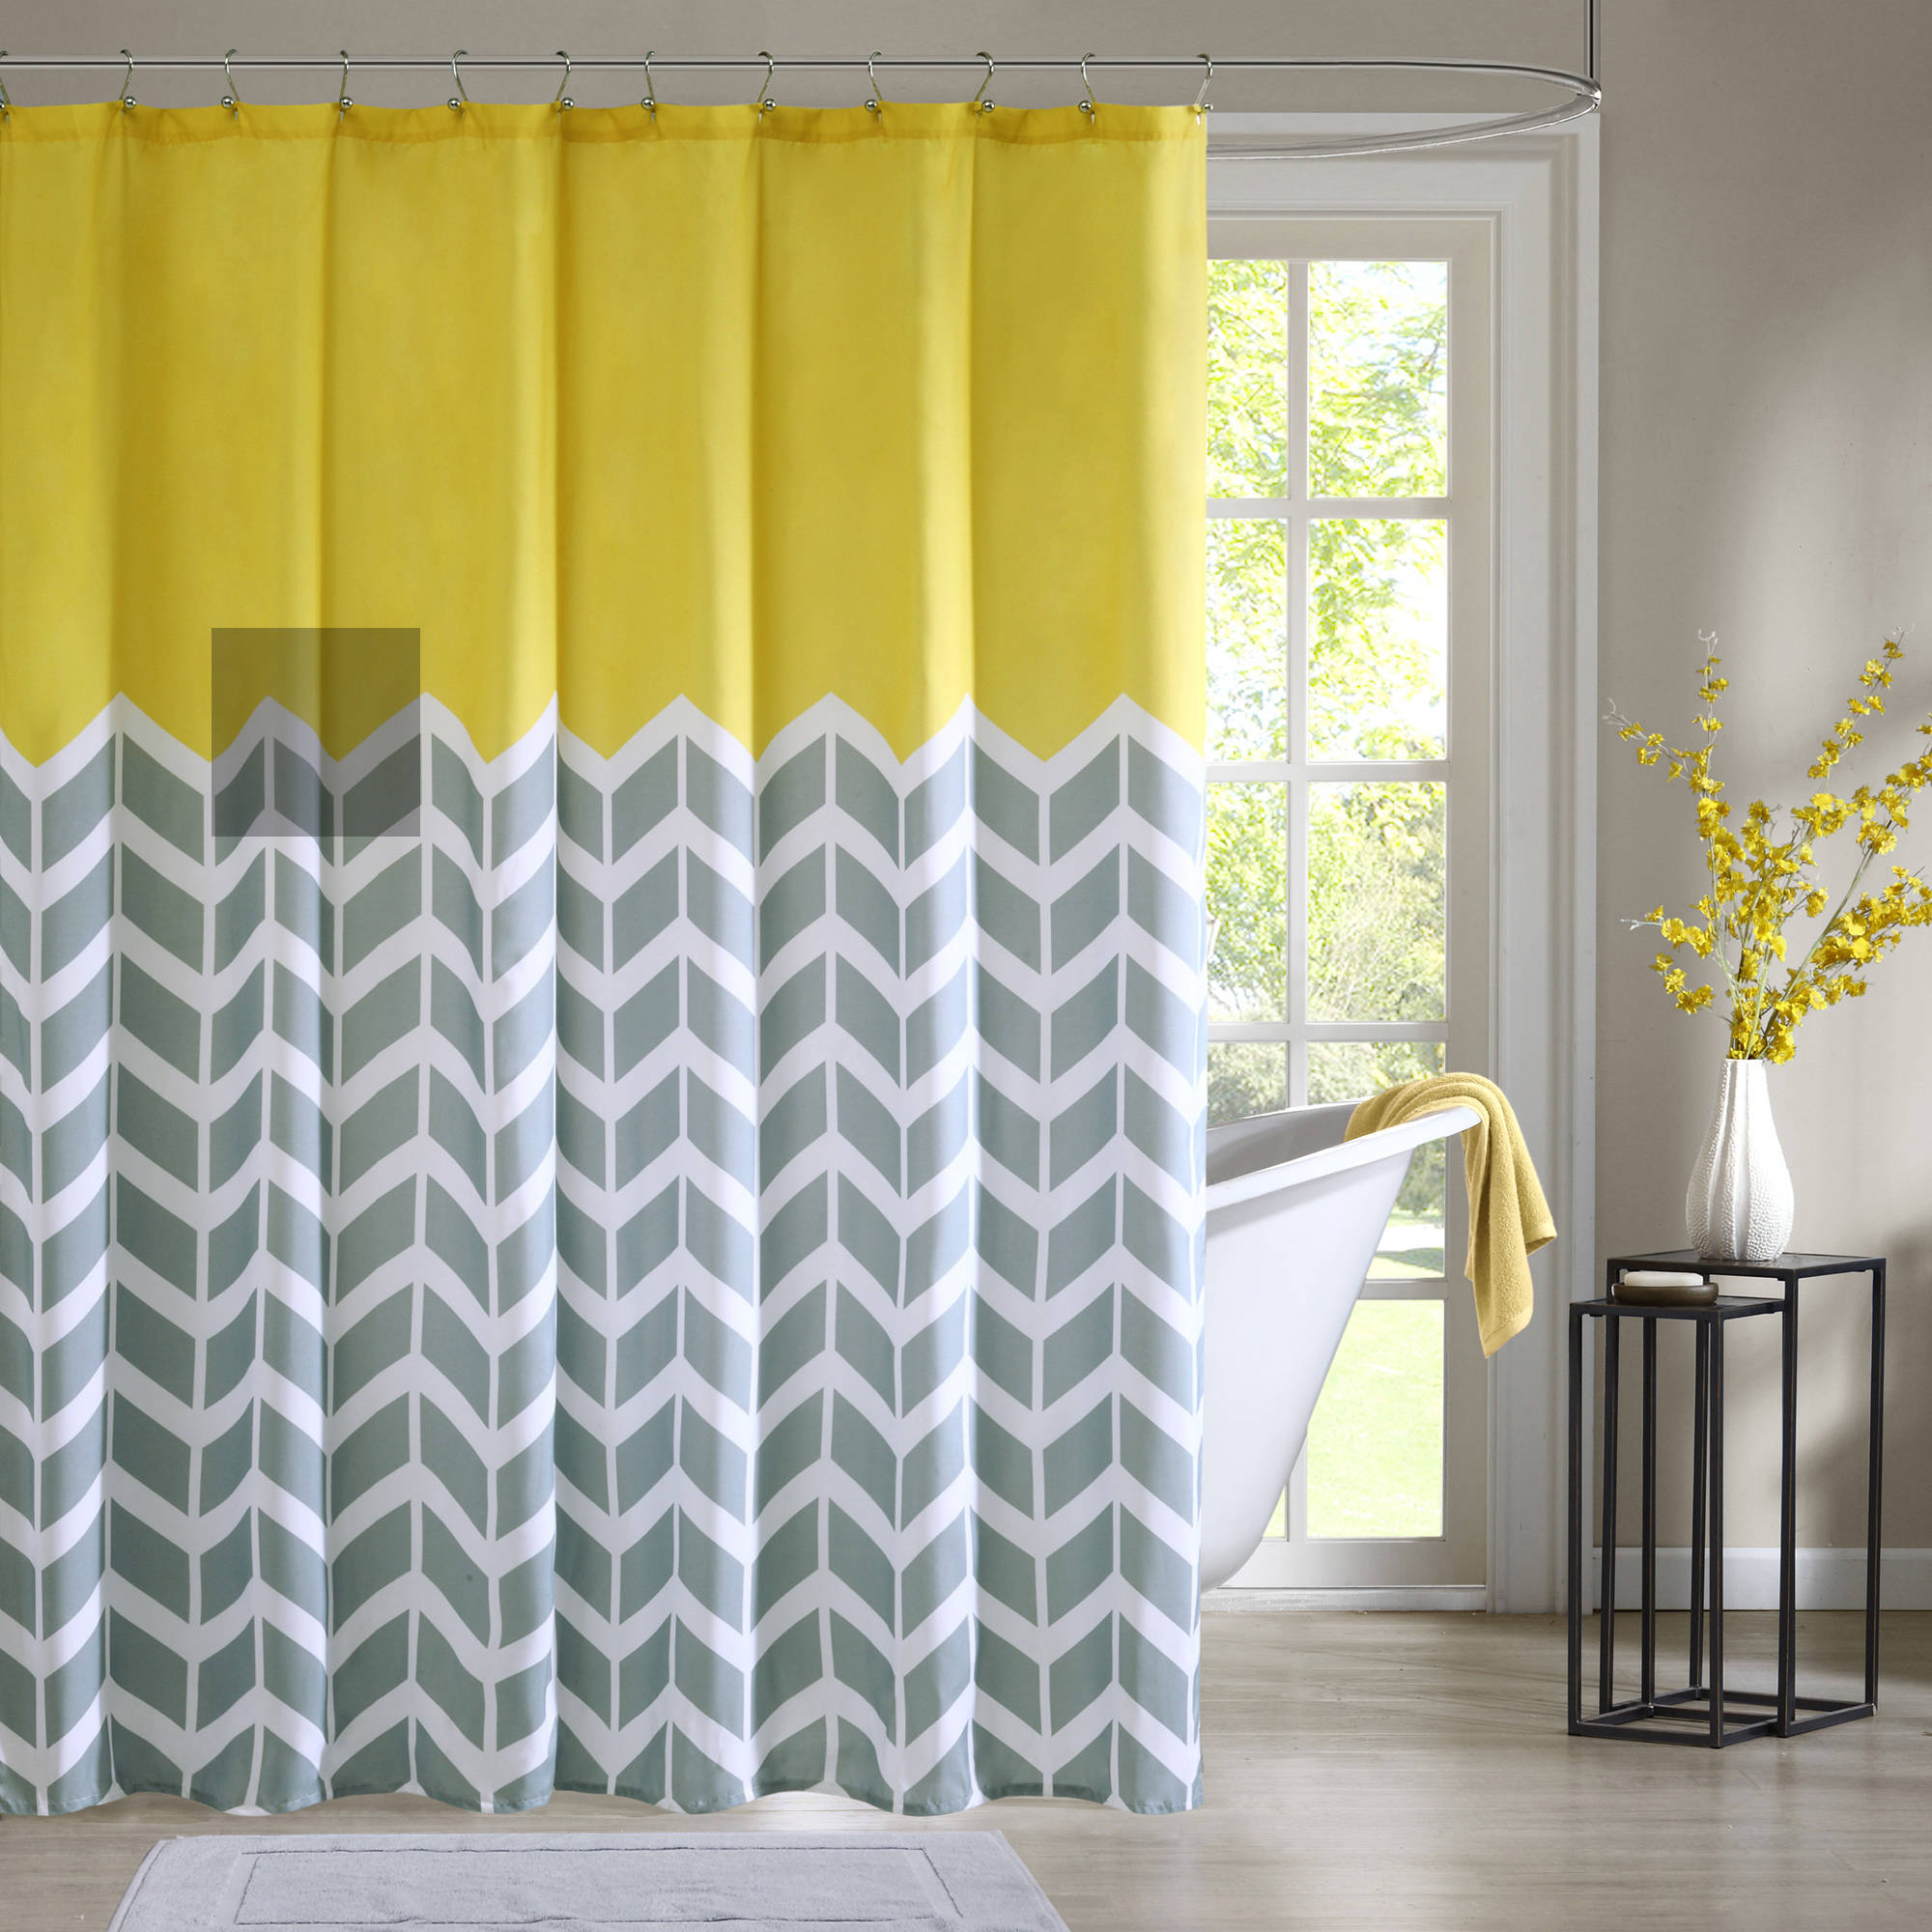 Home Essence Apartment Darcy 100  Microfiber Printed Shower Curtain    Walmart comHome Essence Apartment Darcy 100  Microfiber Printed Shower  . Yellow And Teal Shower Curtain. Home Design Ideas